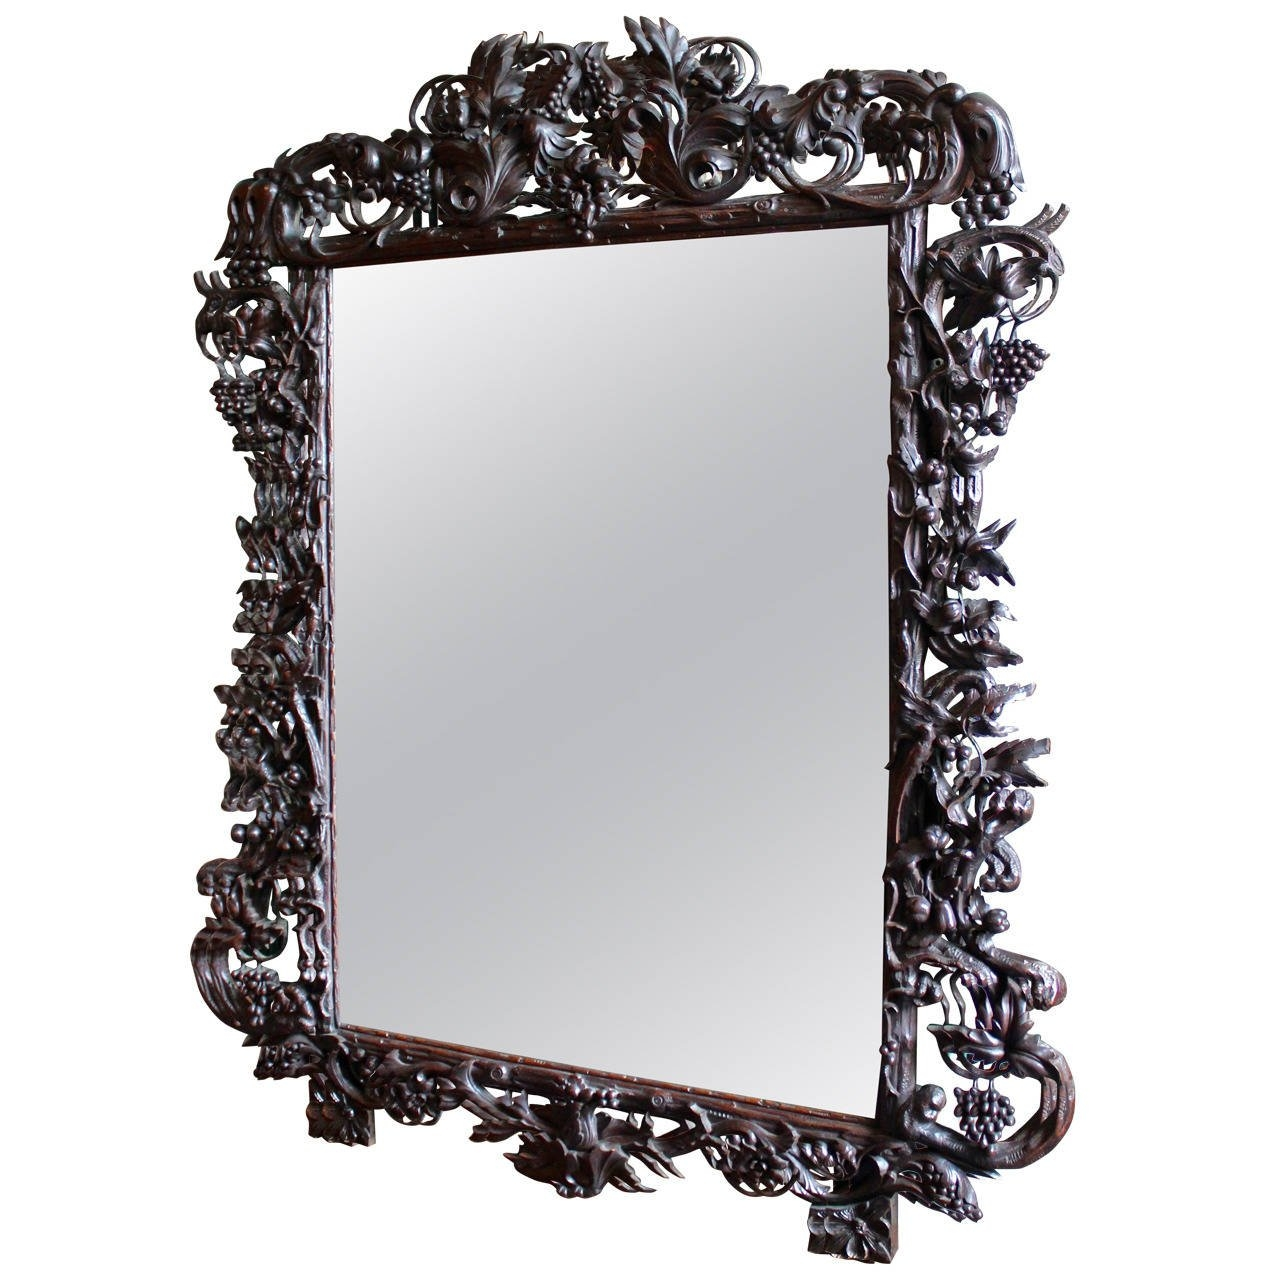 Late 19th Century Ornate Large Black Forest French Mirror At 1stdibs With Mirror Ornate (Image 5 of 15)